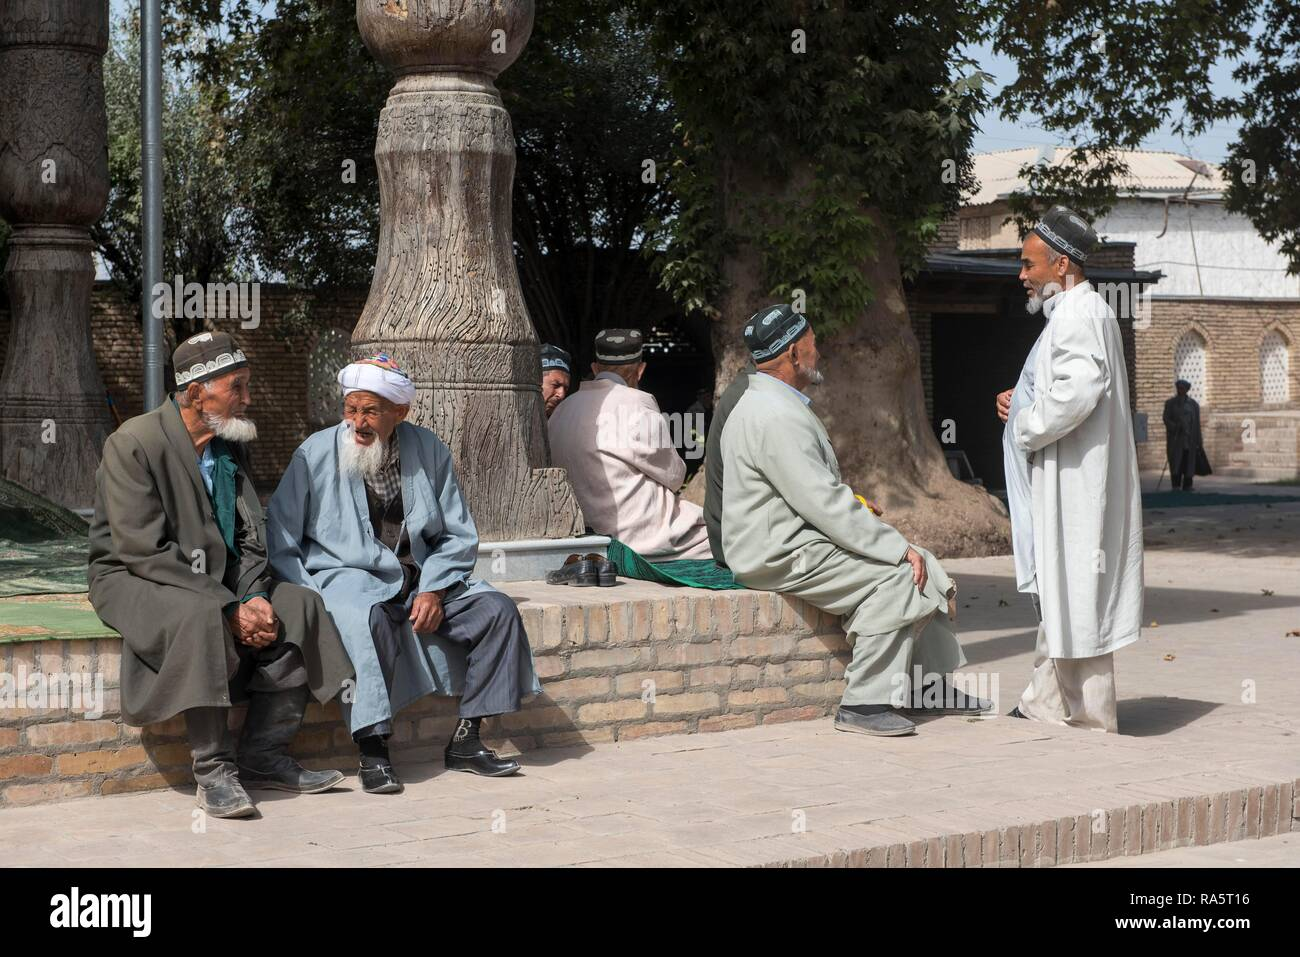 Men in front of the Friday Mosque, Shakhrisabz, Uzbekistan, Asia Stock Photo